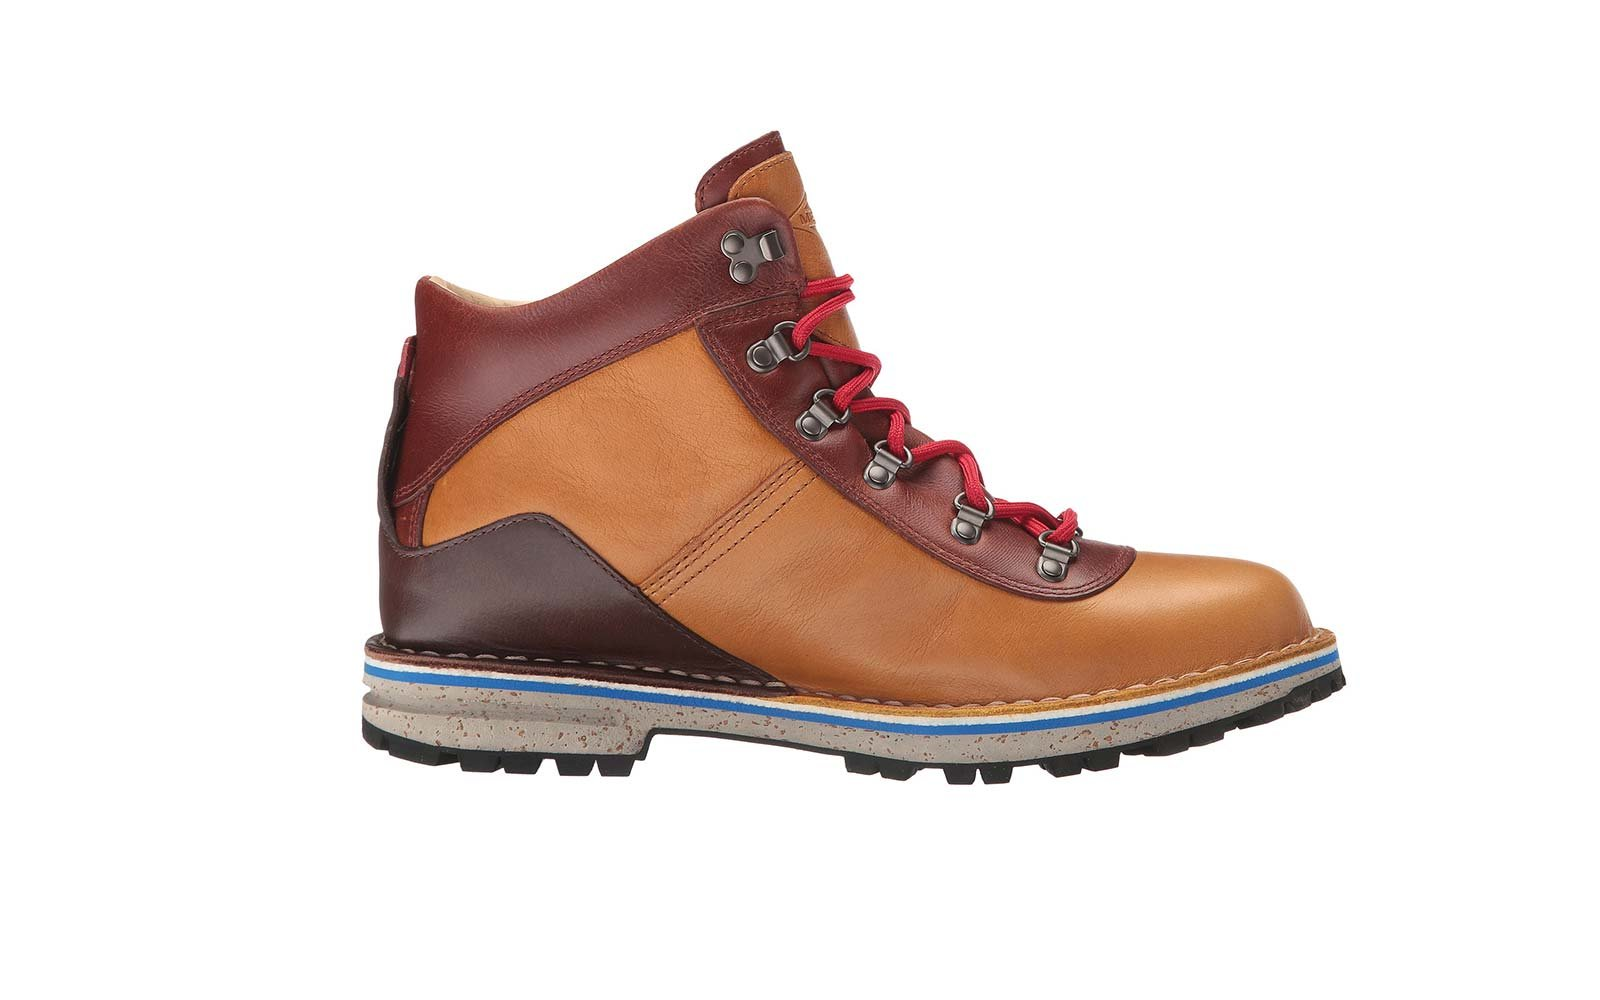 3f391e9394f 9 Cute Hiking Boots to Take You From Trail to Town